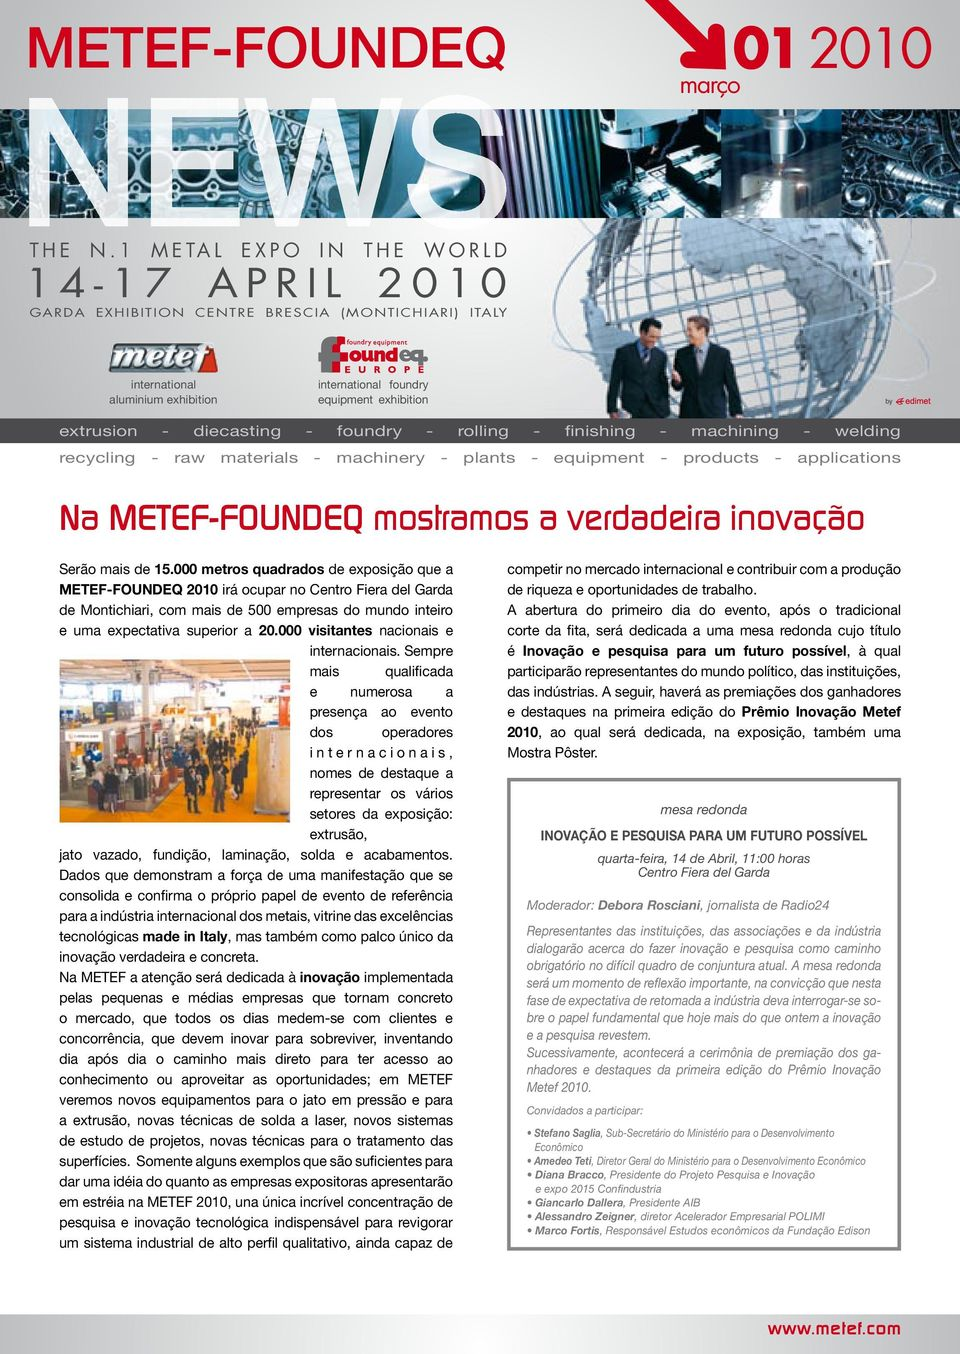 - foundry - rolling - finishing - machining - welding recycling - raw materials - machinery - plants - equipment - products - applications Na METEF-FOUNDEQ mostramos a verdadeira inovação Serão mais